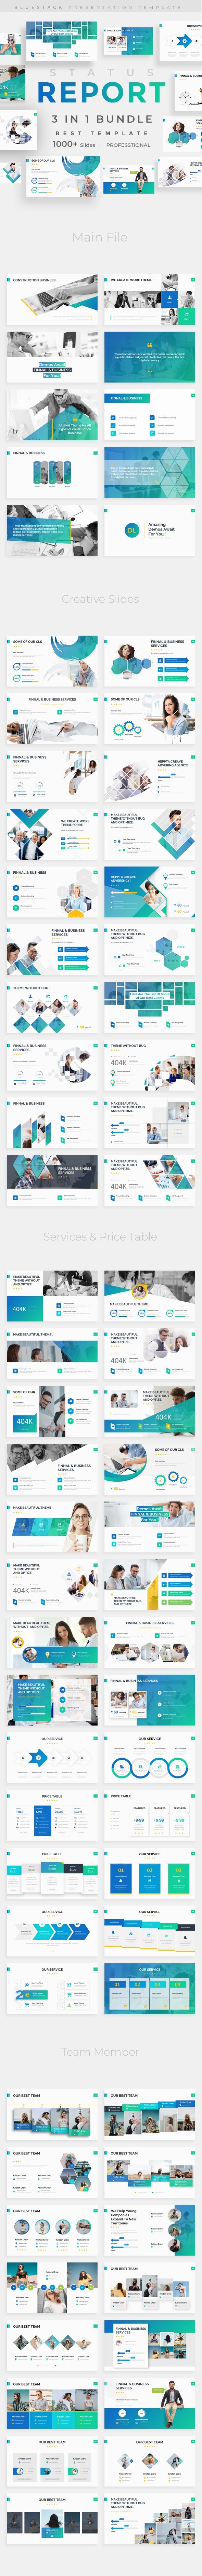 Status Report 3 in 1 Pitch Deck Bundle Powerpoint Template - Business PowerPoint Templates